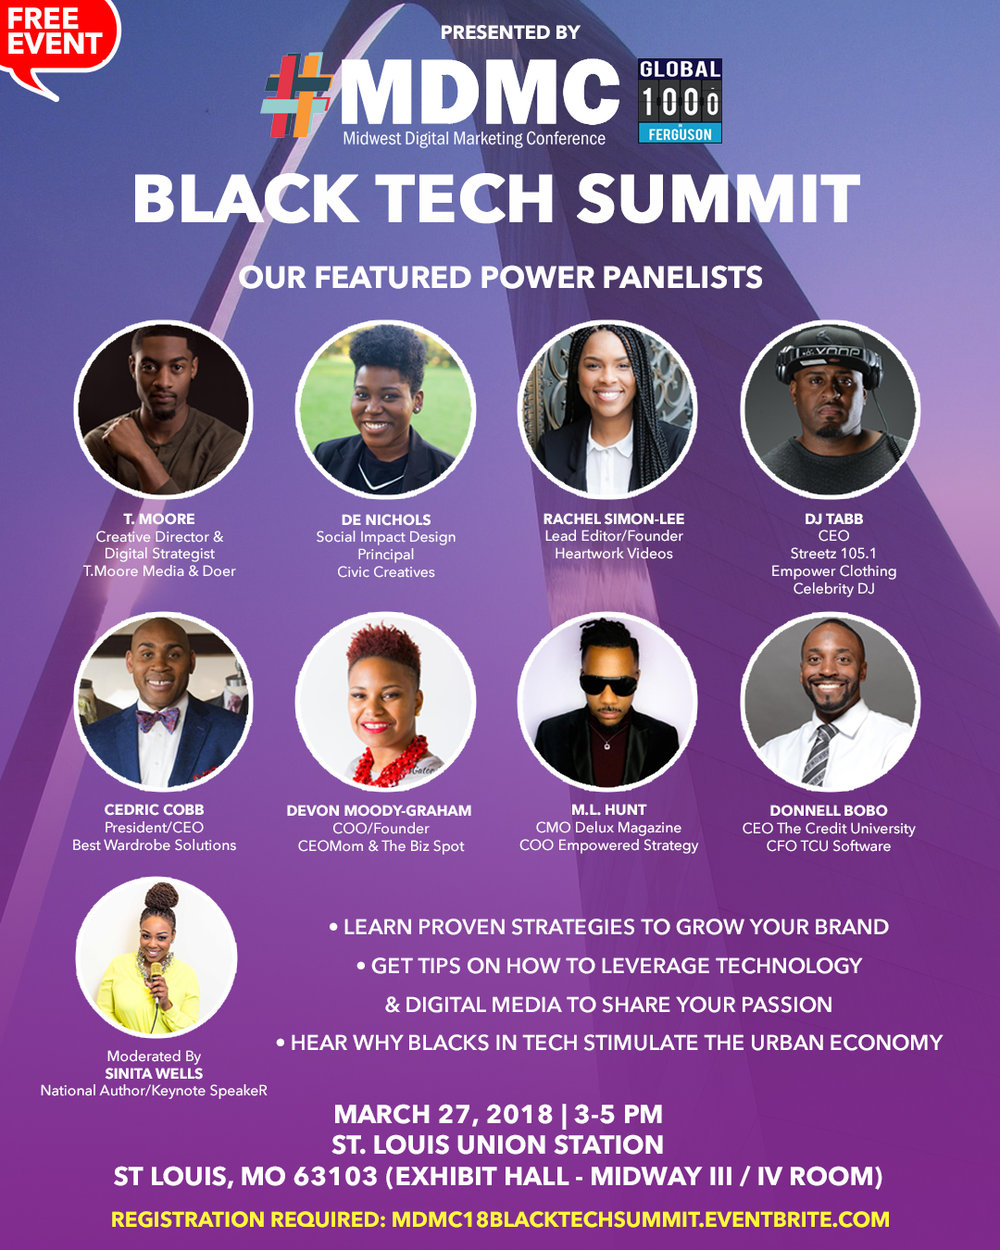 MDMC Hosts:     Black Tech Summit      Presented by: Ferguson1000 - If you are not registered for MDMC and attending the summit please be sure to stop by registration to check in. Upon your check in you will be directed to our room Midway III/IV, located in the Exhibitor Hallhttp://mdmc18blacktechsummit.eventbrite.com/